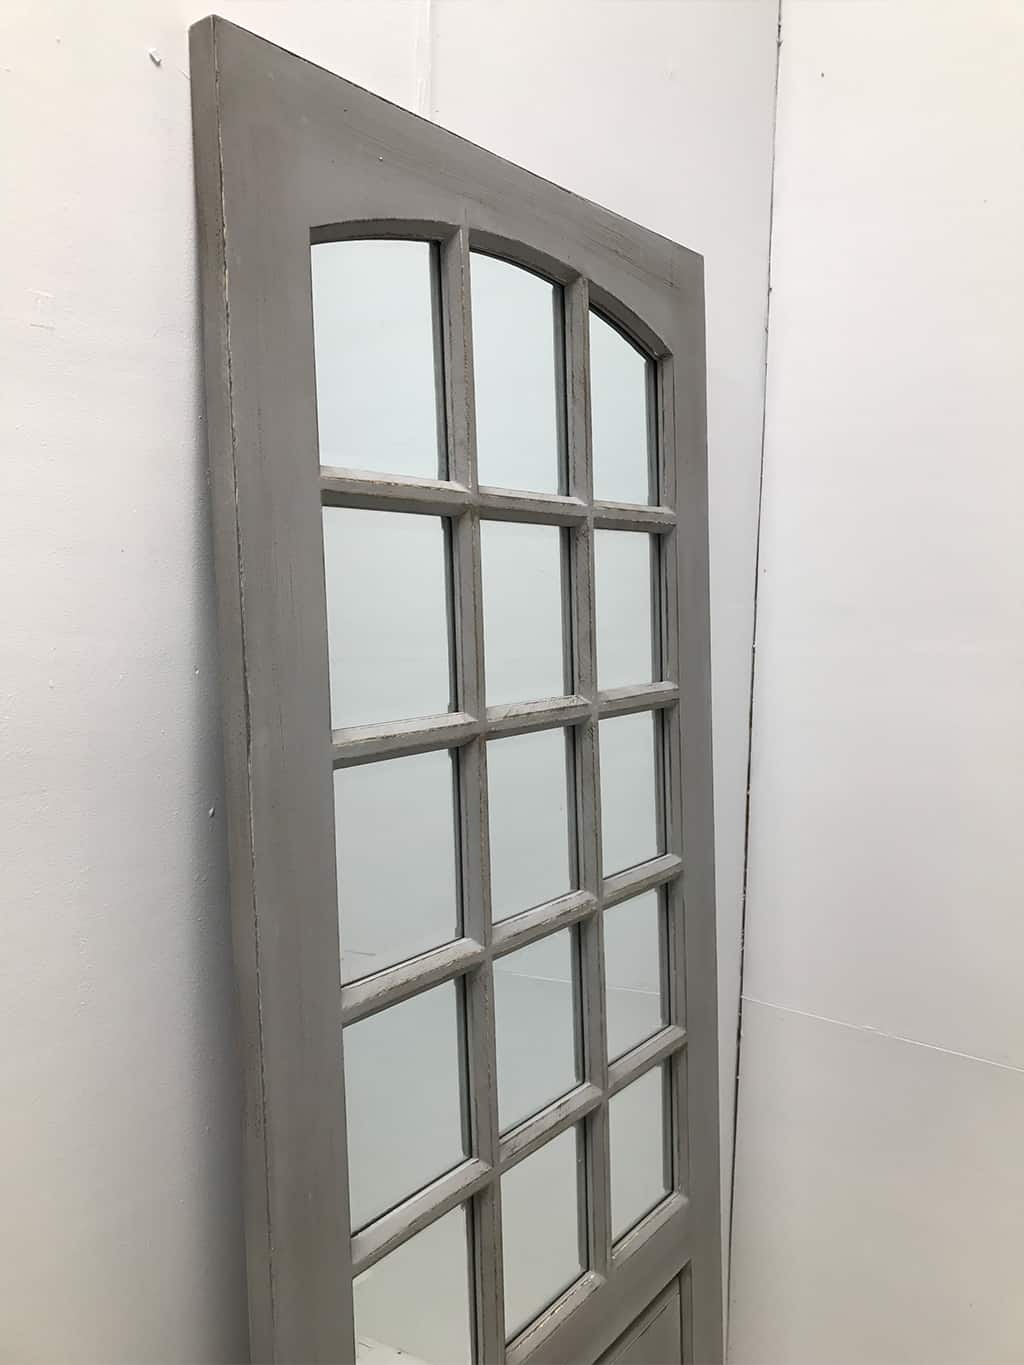 Door, 15 bevelled panels, wood and mirror, grey with rubbing